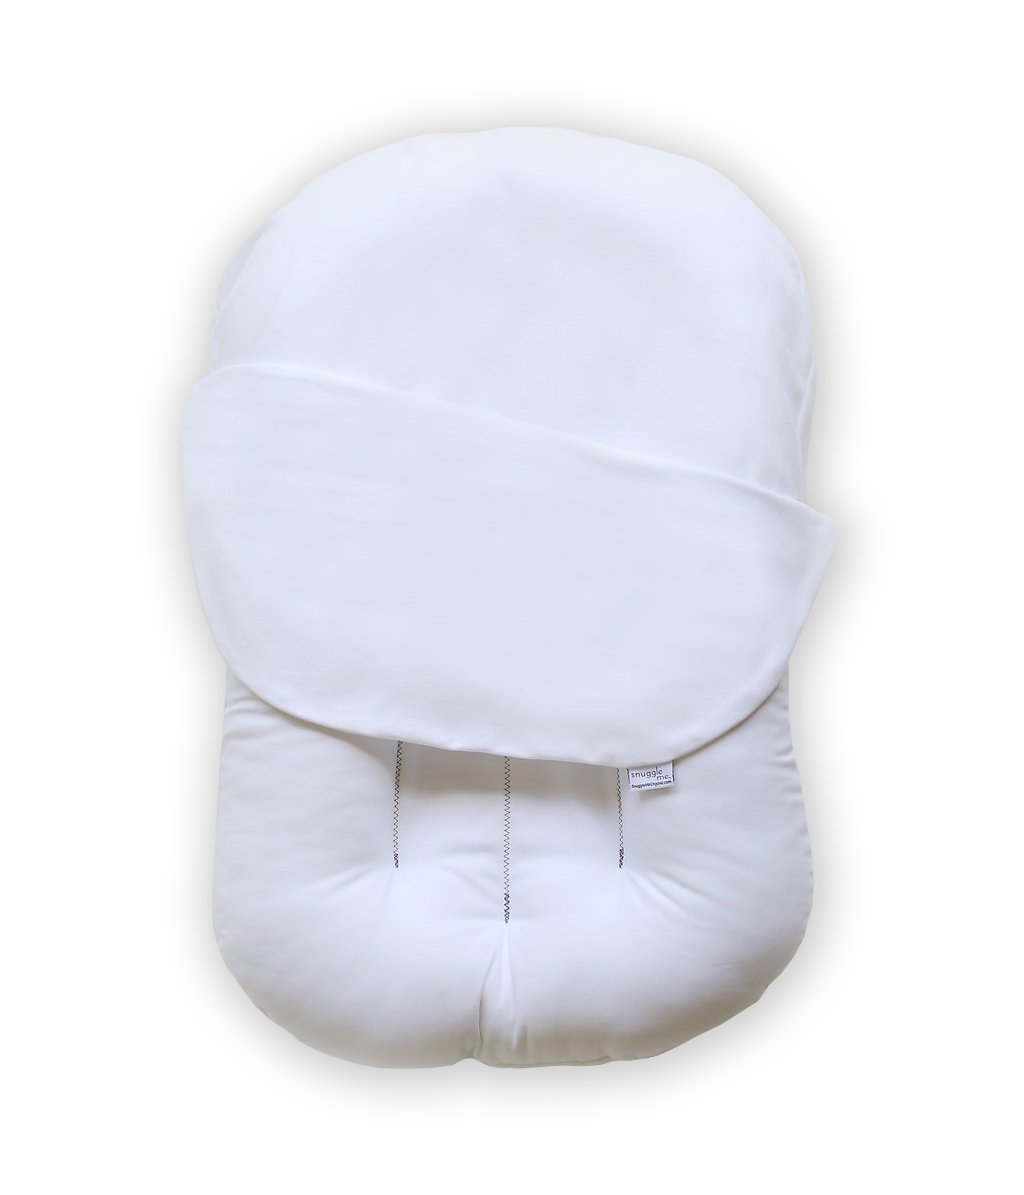 Snuggle Me Original | Sensory Lounger for Baby | Conventional Cotton Virgin Polyester Fiber Fill B06Y4VF3X4